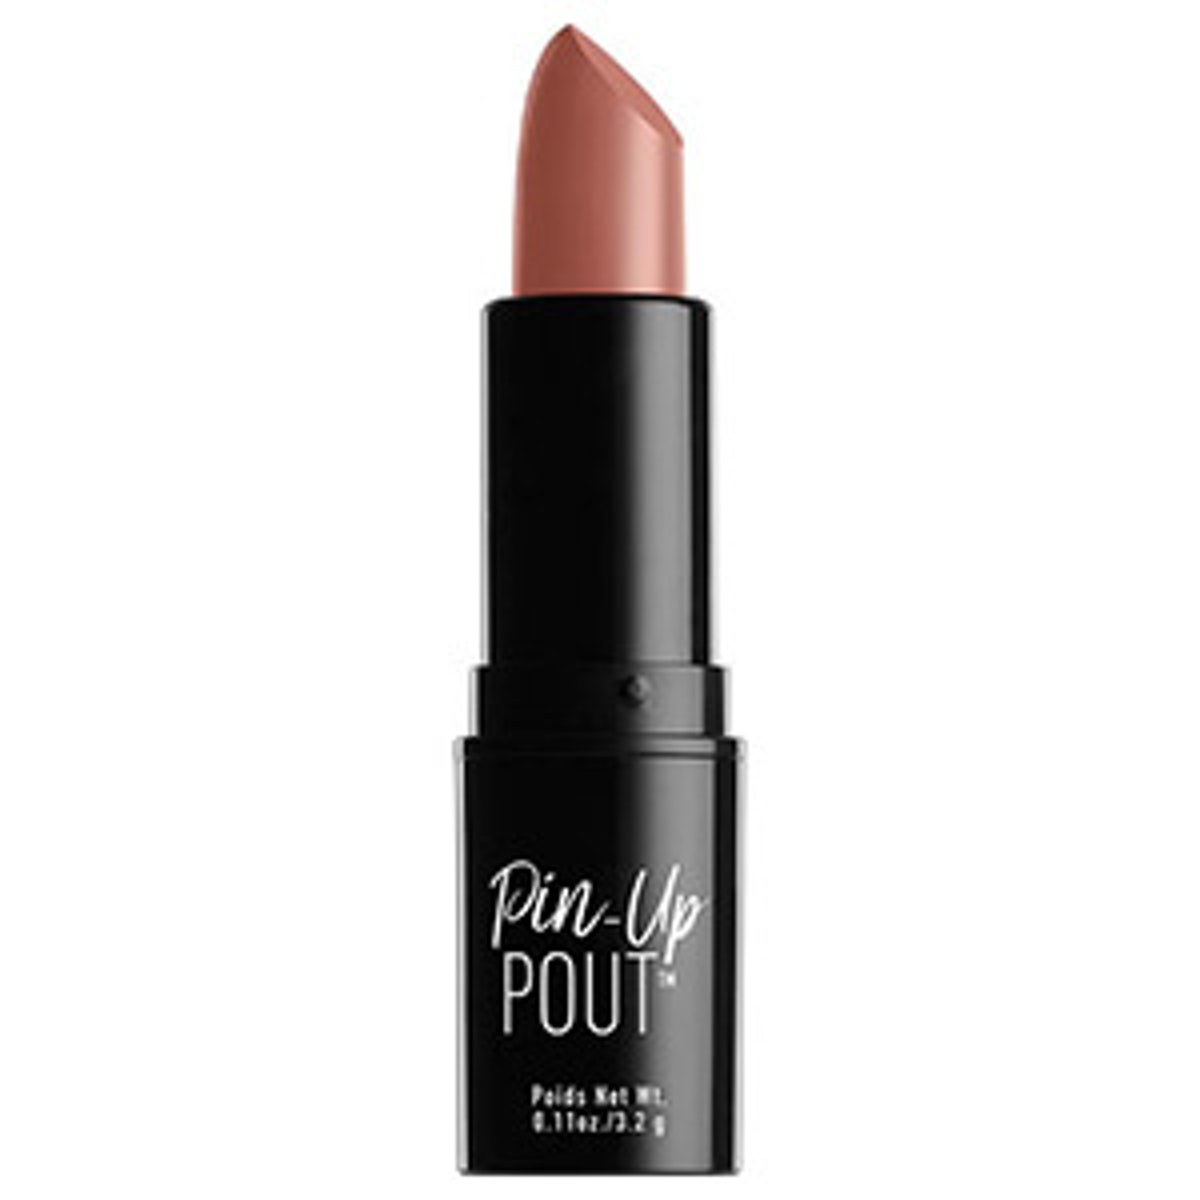 NYX Pin-Up Pout Lipstick In Corset